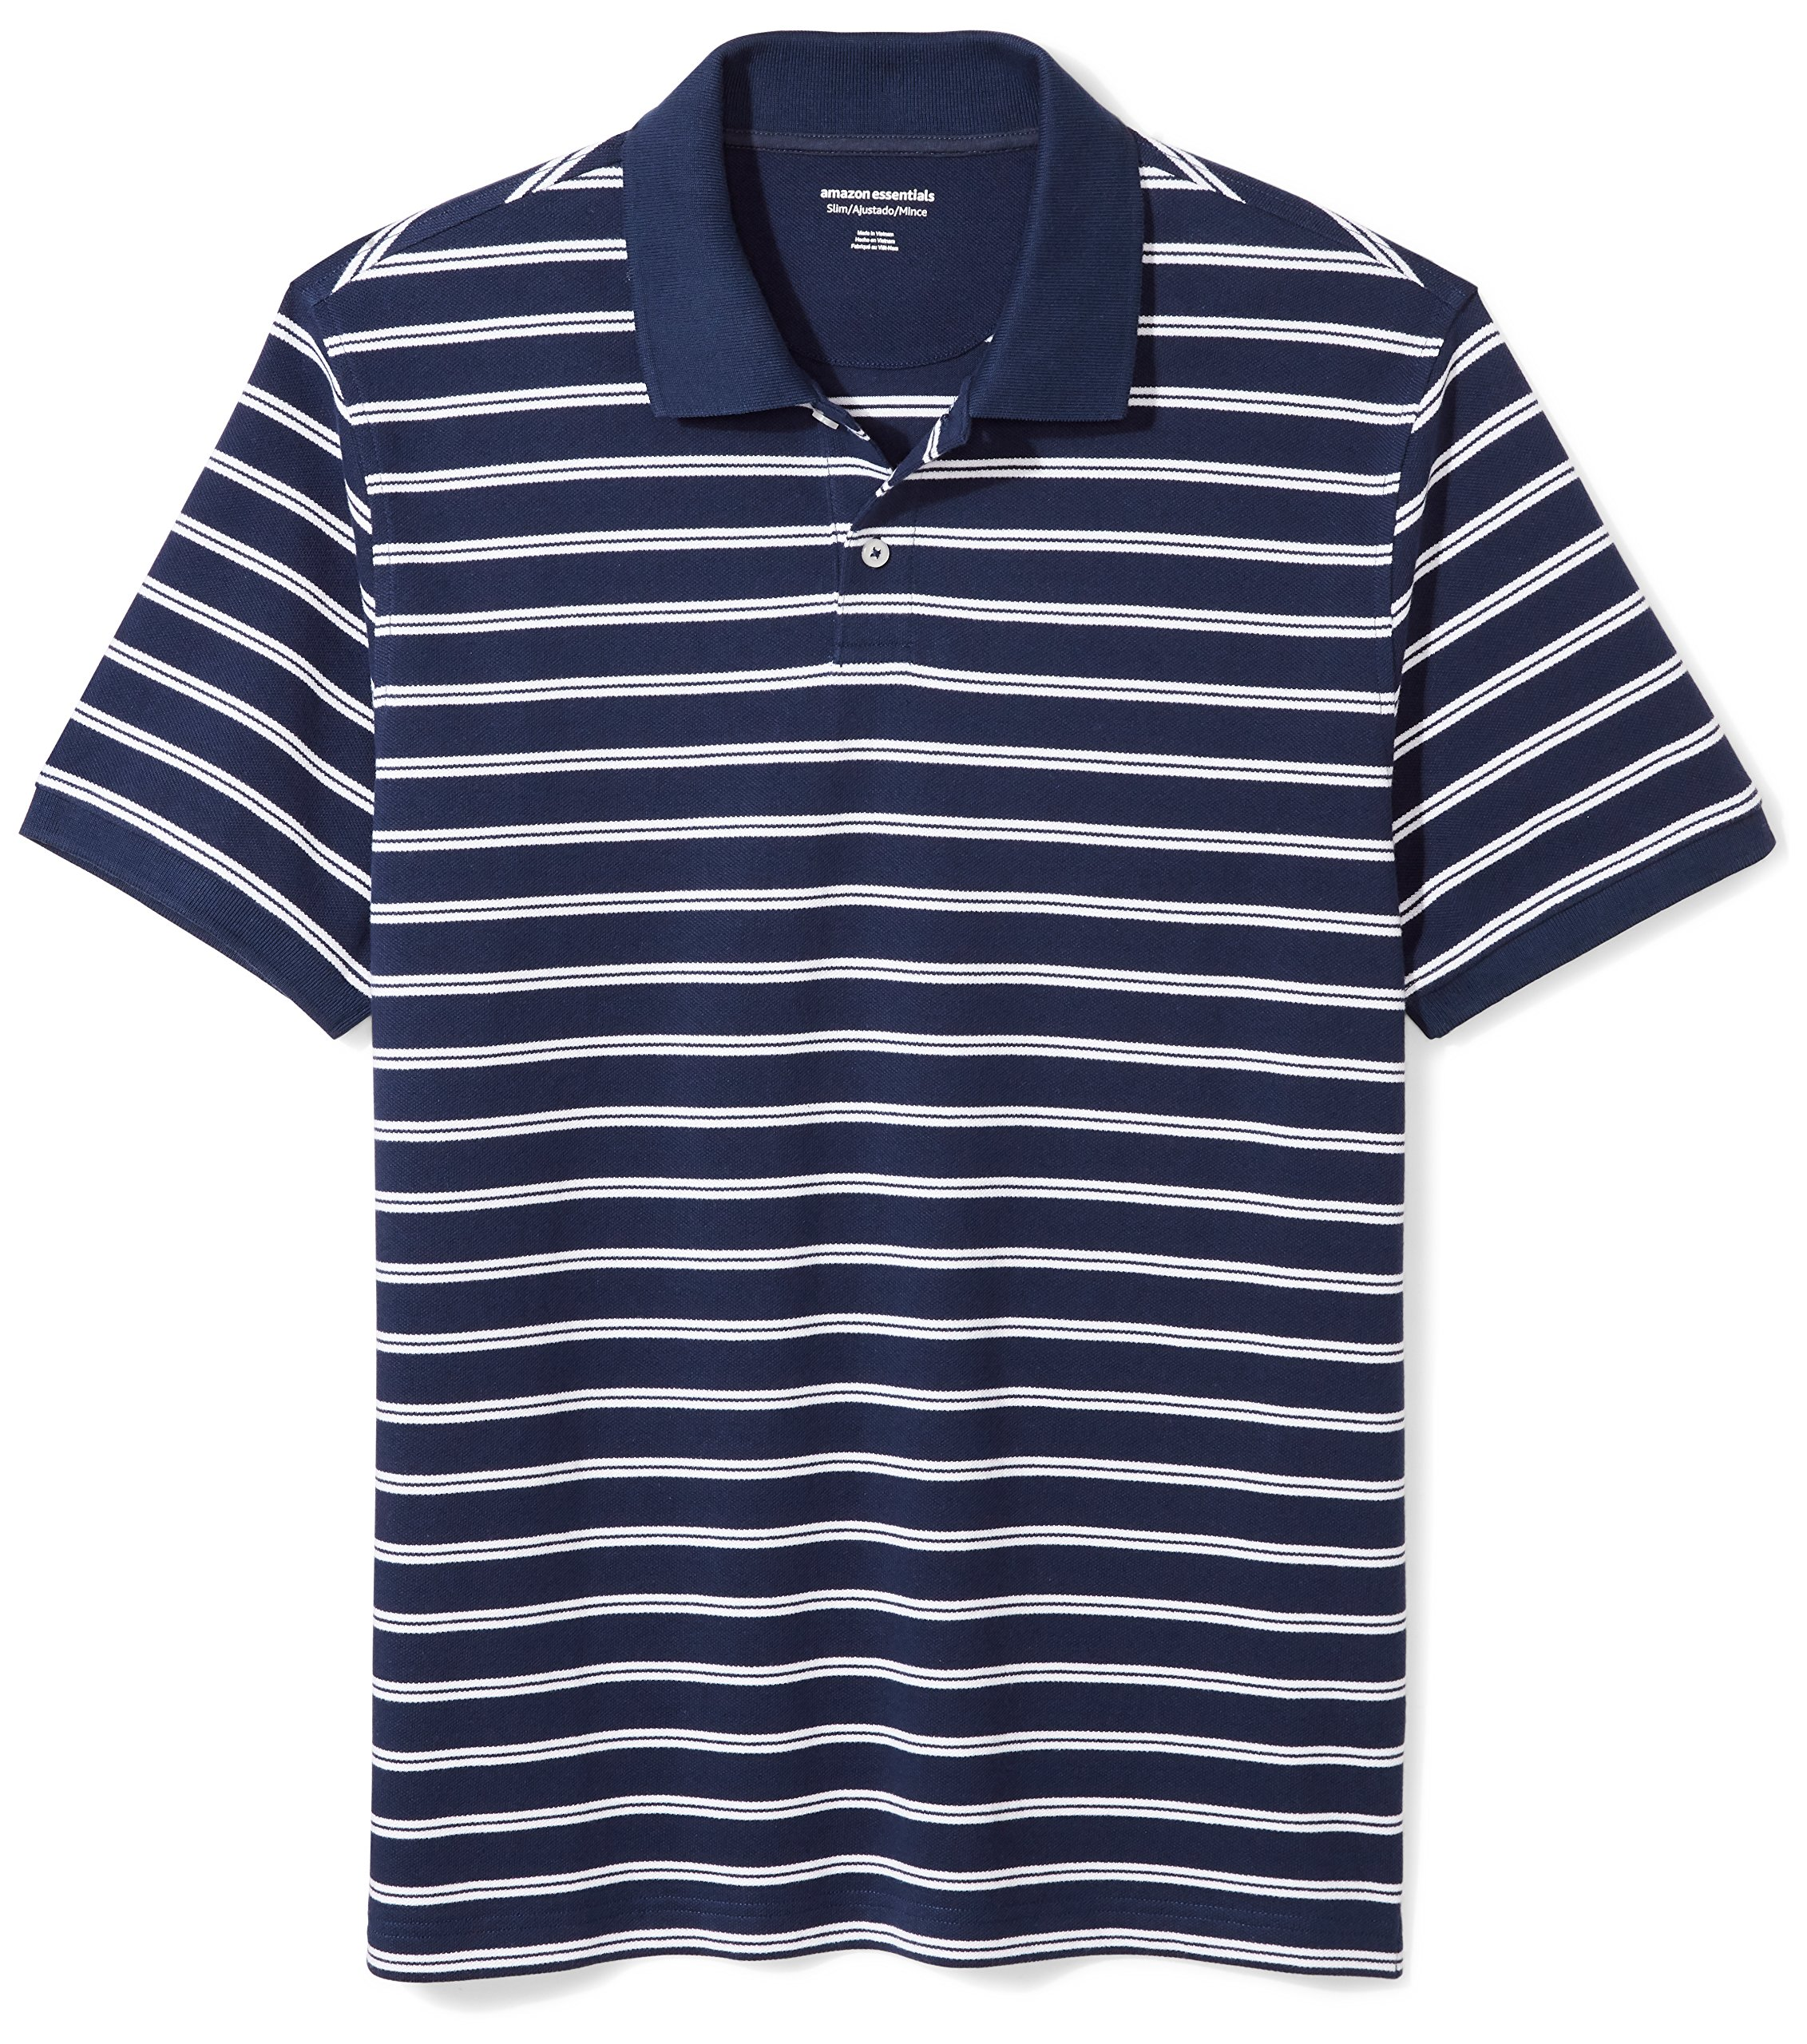 Amazon Essentials Men's Slim-Fit Striped Cotton Pique Polo Shirt, Navy/White Stripe, Large